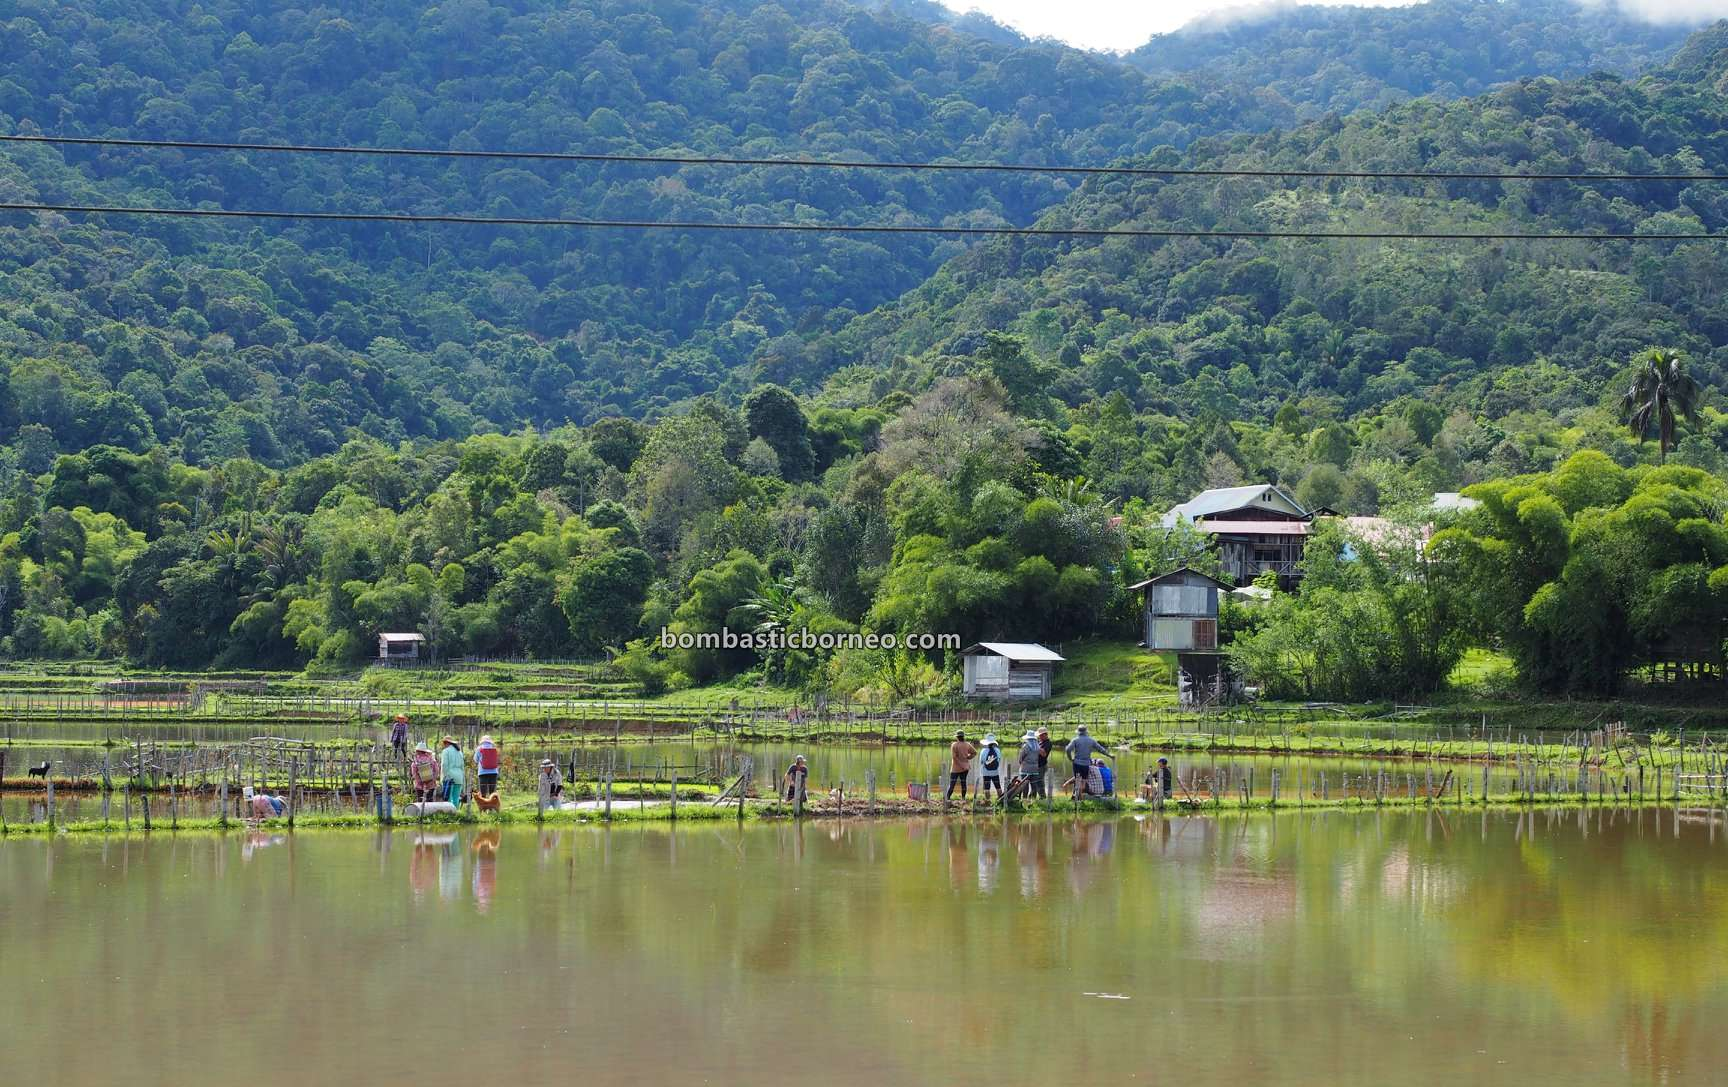 organic rice, paddy fields, traditional, backpackers, destination, Interior village, Long Langai, Sarawak, Malaysia, Borneo, Maligan Highlands, Lun Bawang, native, Tourist attraction, travel guide,